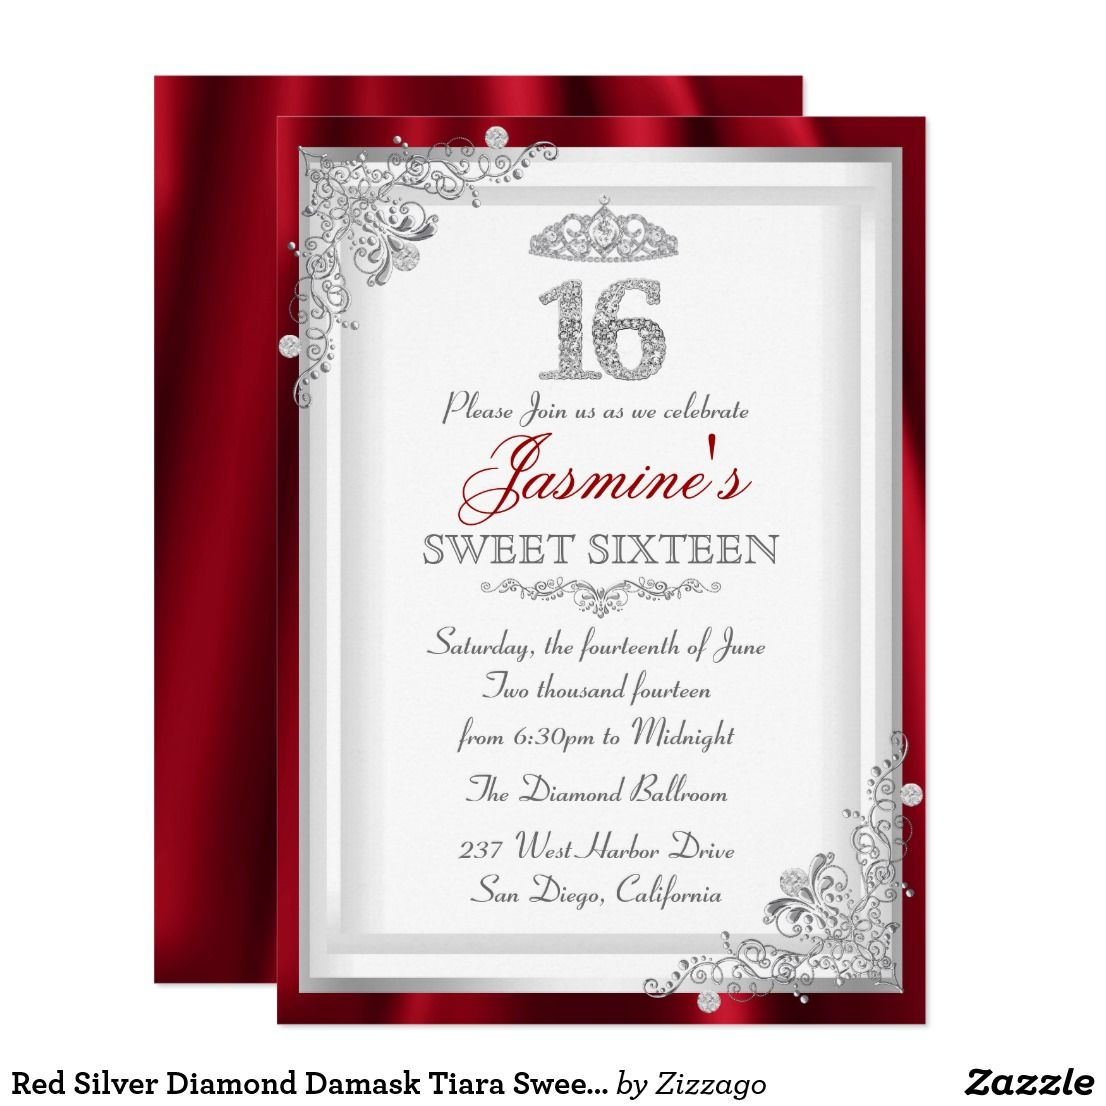 Red Silver Diamond Damask Tiara Sweet 16 Invite | Pinterest | Sweet ...